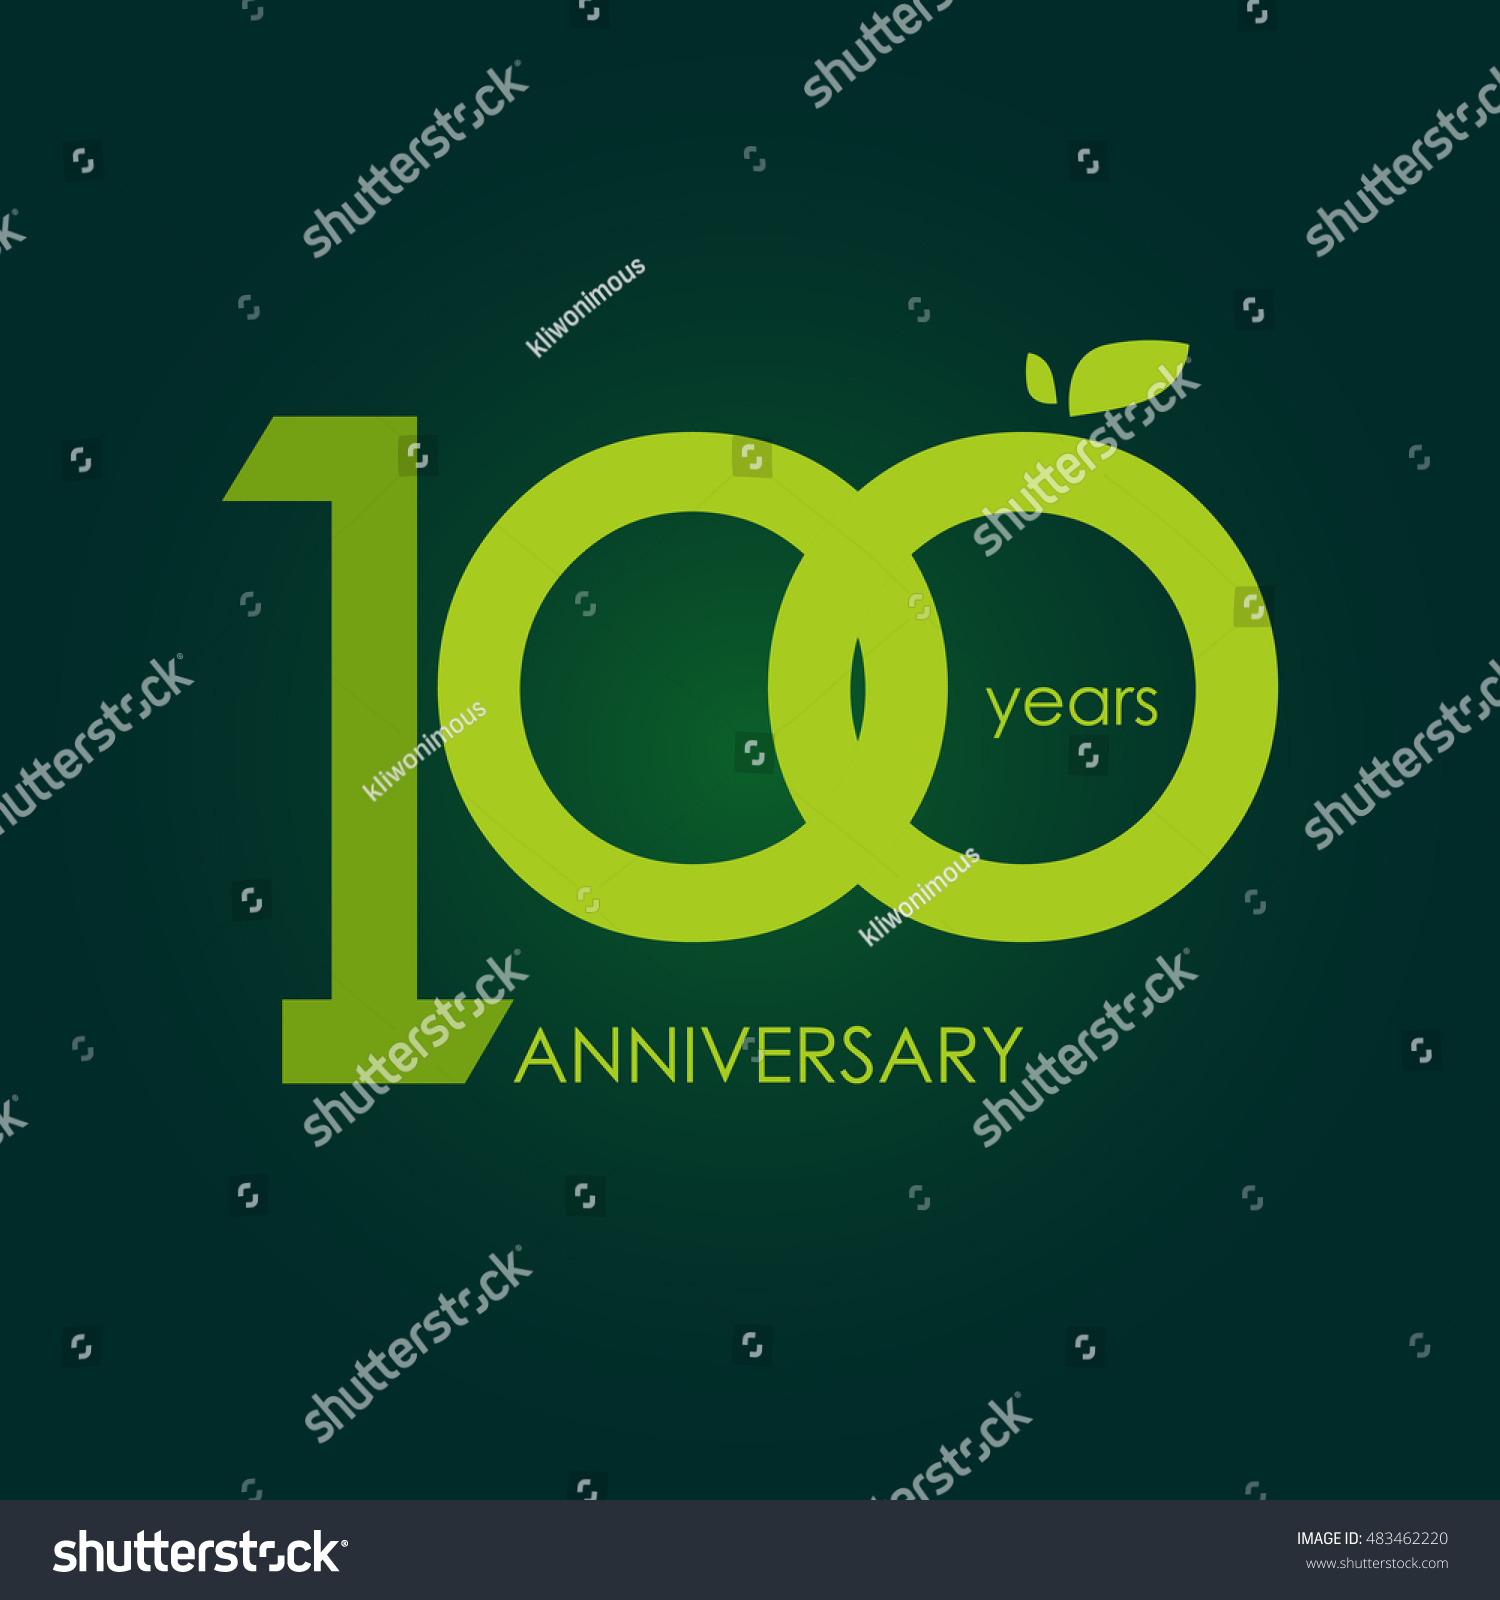 100 years anniversary signs symbols which stock vector 483462220 100 years anniversary signs symbols which is green with flat design style buycottarizona Image collections